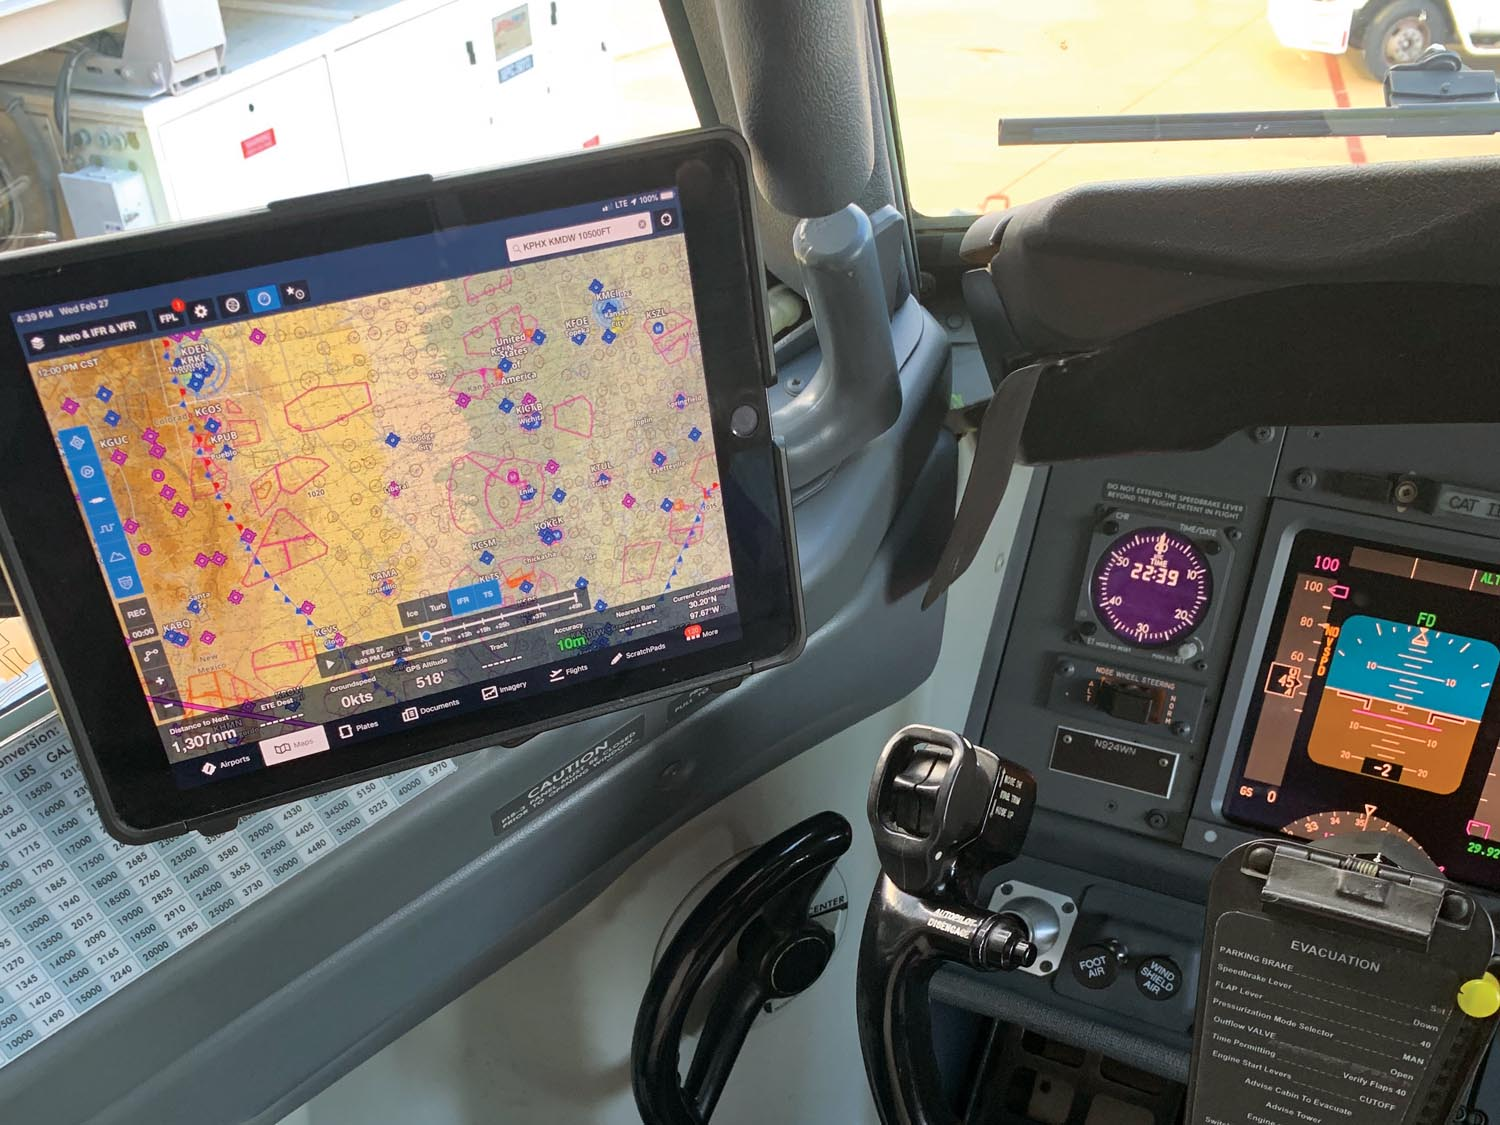 The iPad-based electronic flight bag (EFB) in a typical airline configuration.